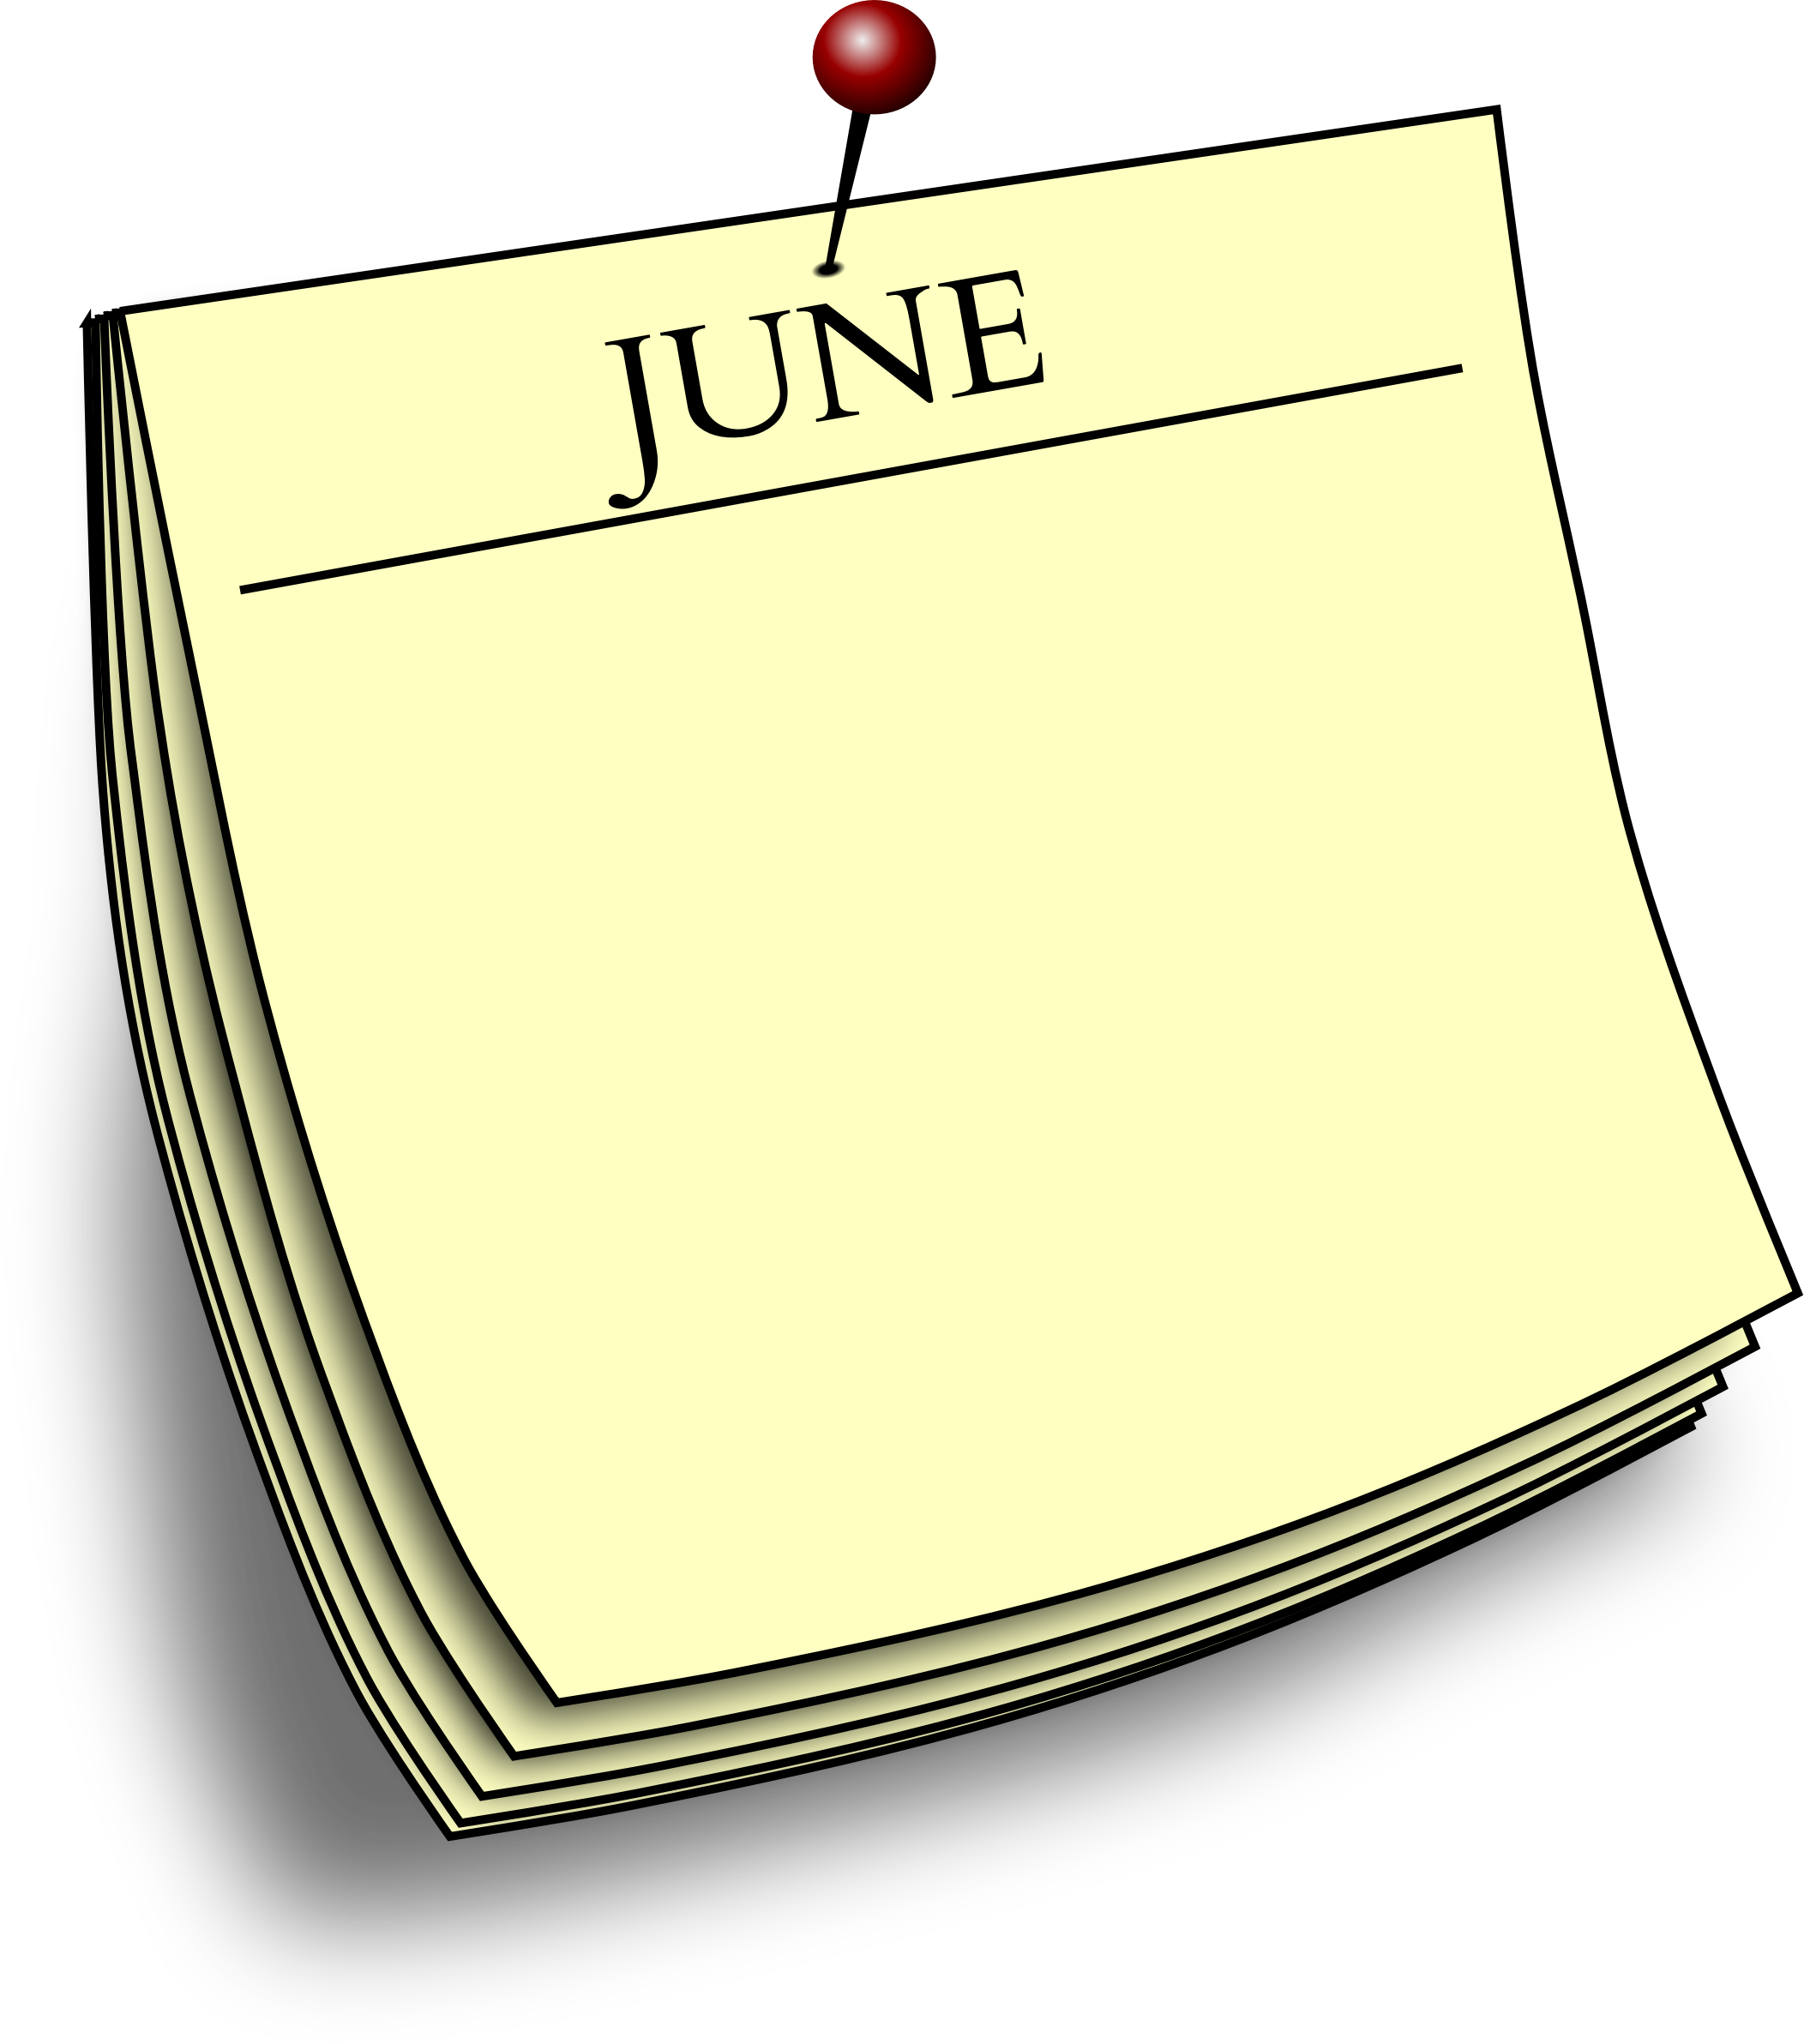 Monthly note - June by Firkin